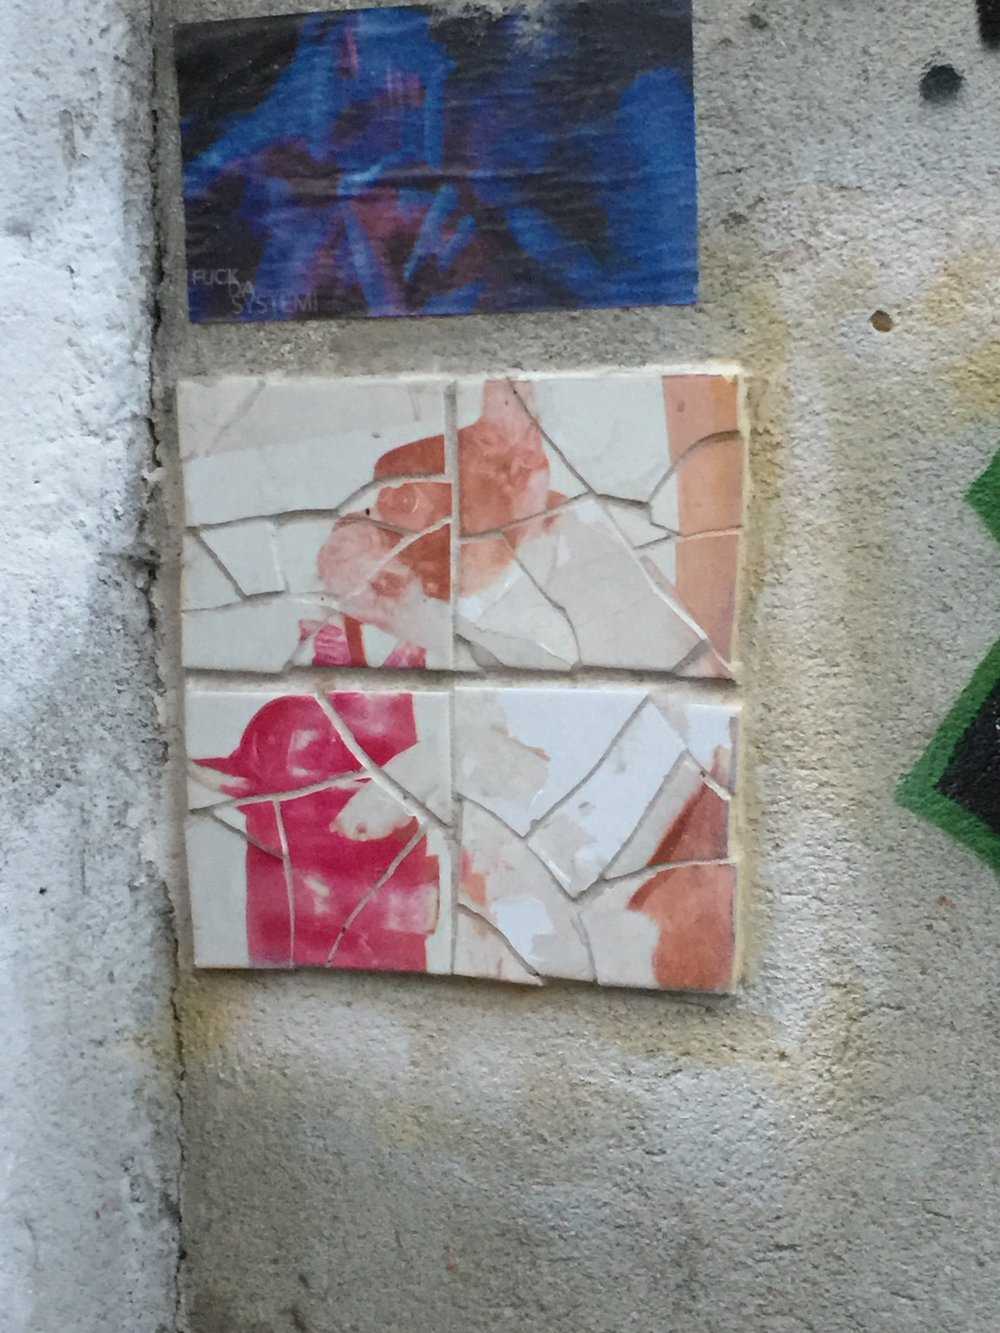 Tiles on side of building in Alfama